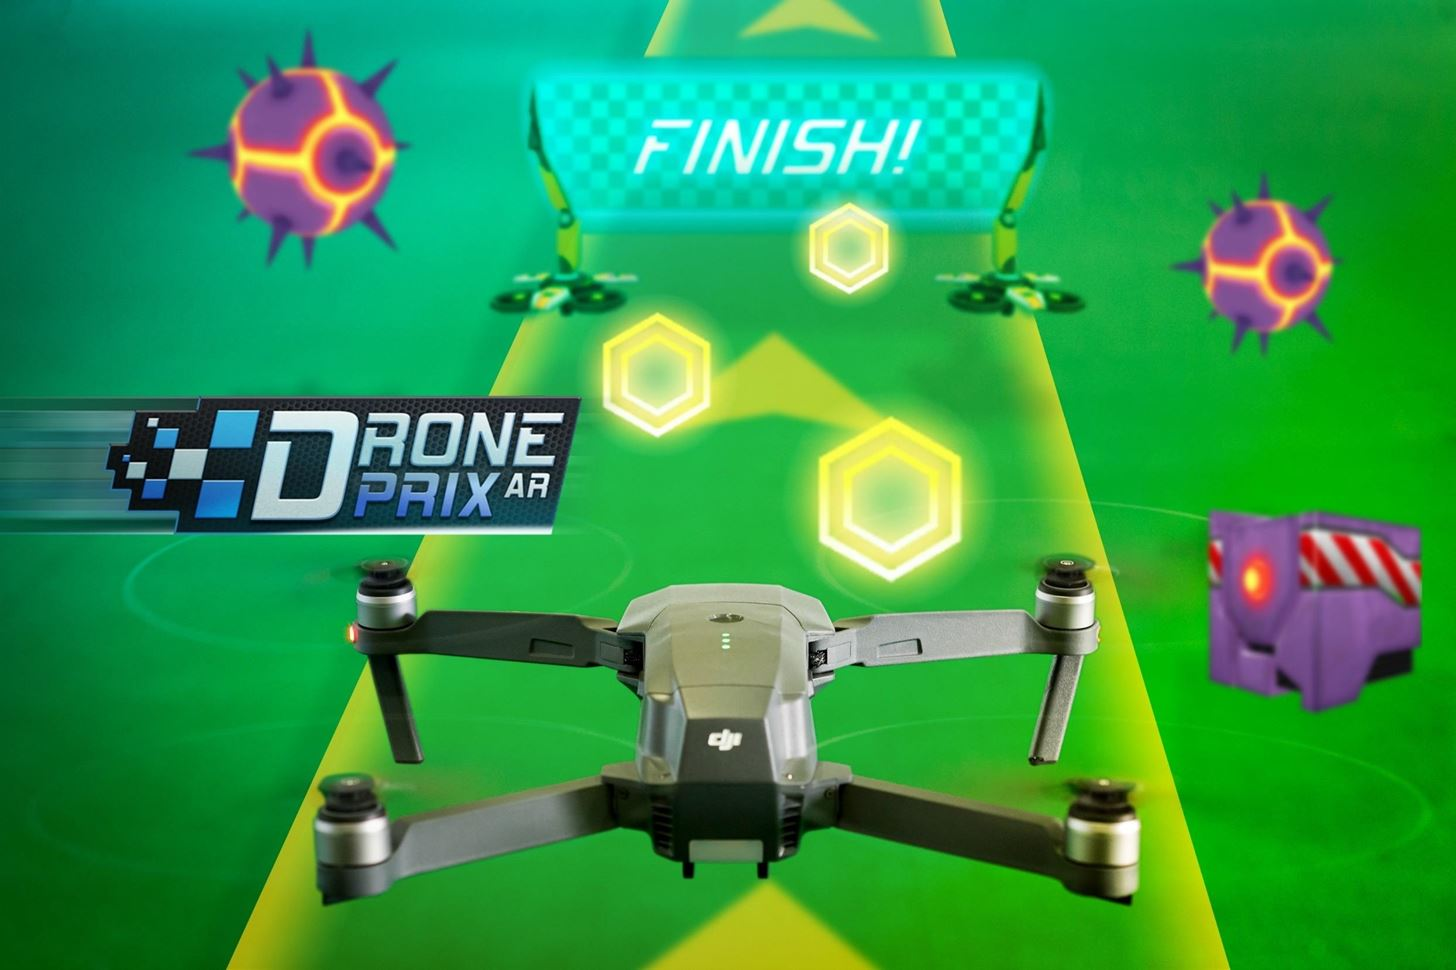 Drone Prix Finishes as First AR Game for DJI Drones